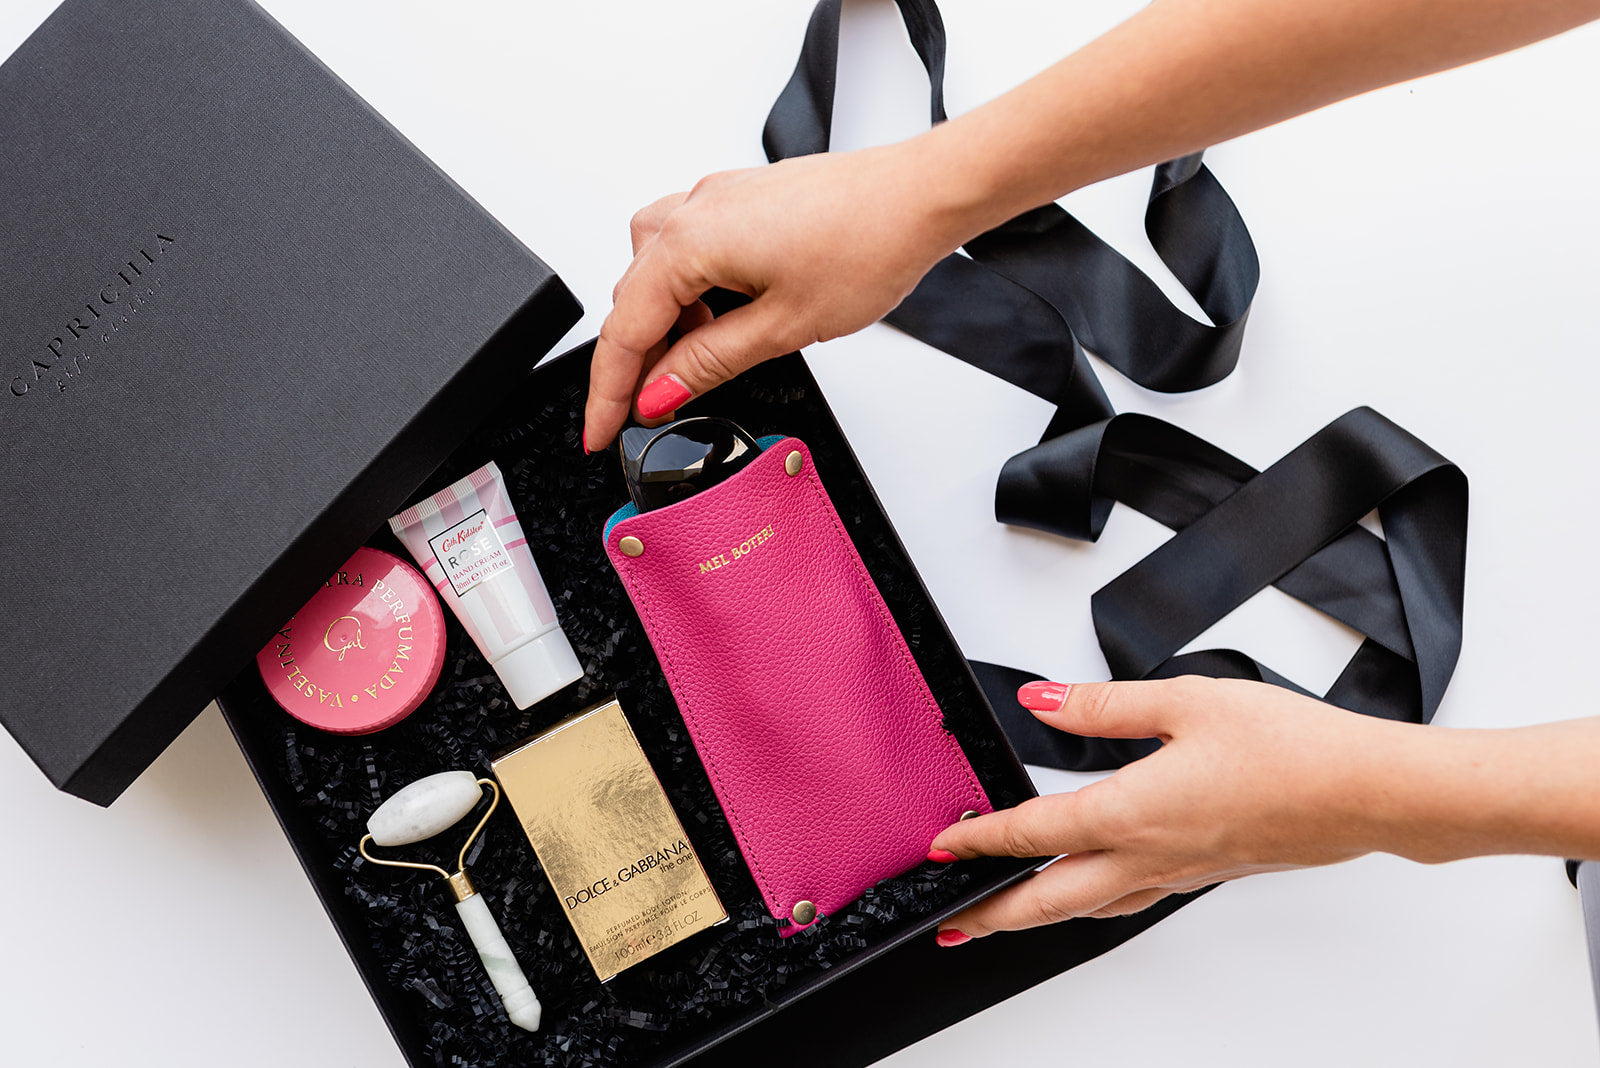 Beauty Box Gift Set | Mel Boteri x Caprichia Gifts Atelier